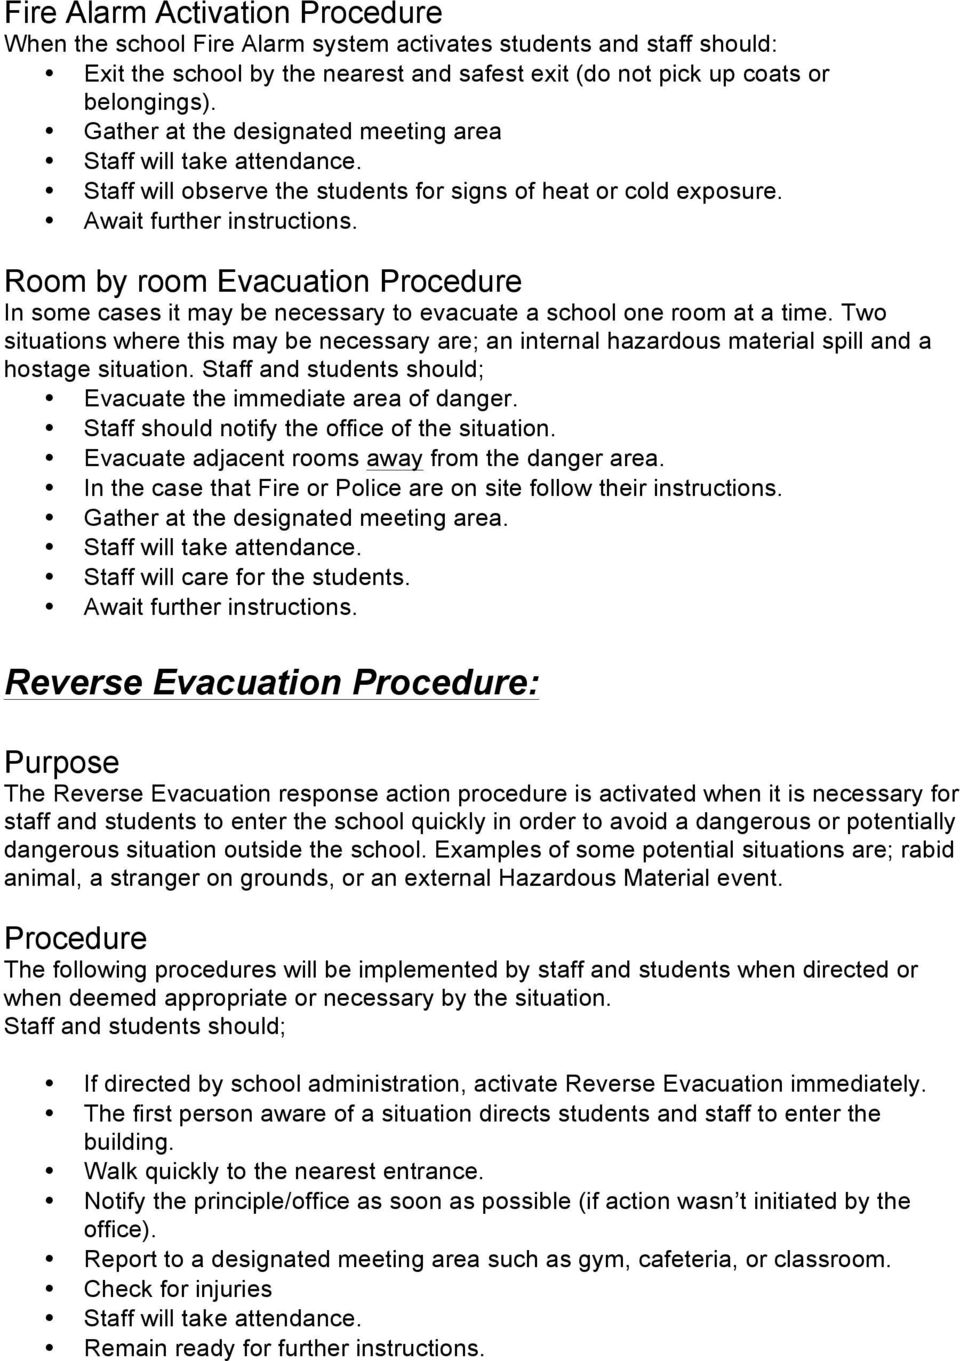 Room by room Evacuation In some cases it may be necessary to evacuate a school one room at a time.